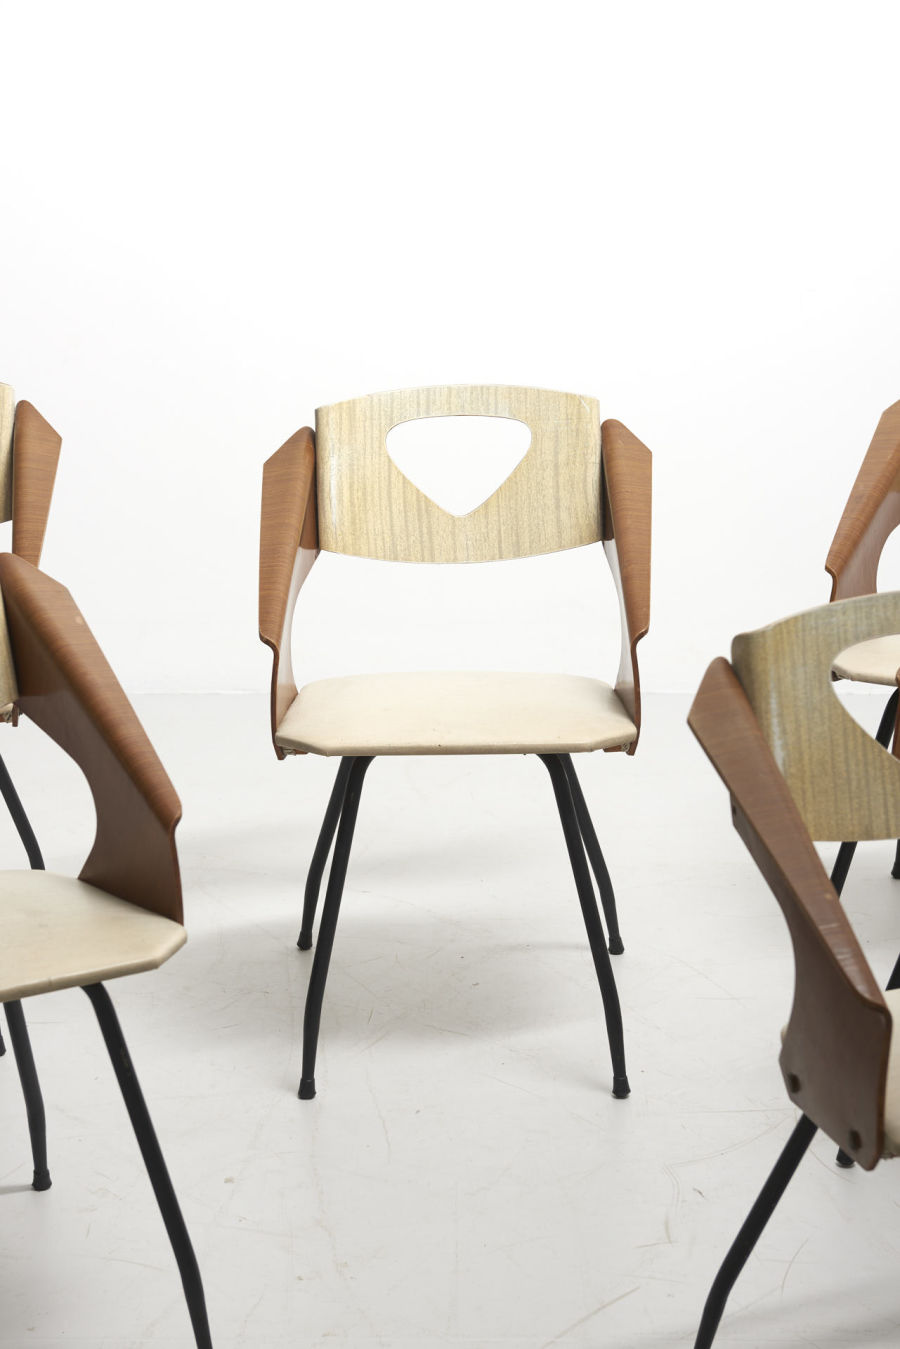 modestfurniture-vintage-2473-italian-dining-chairs-1950-plywood04